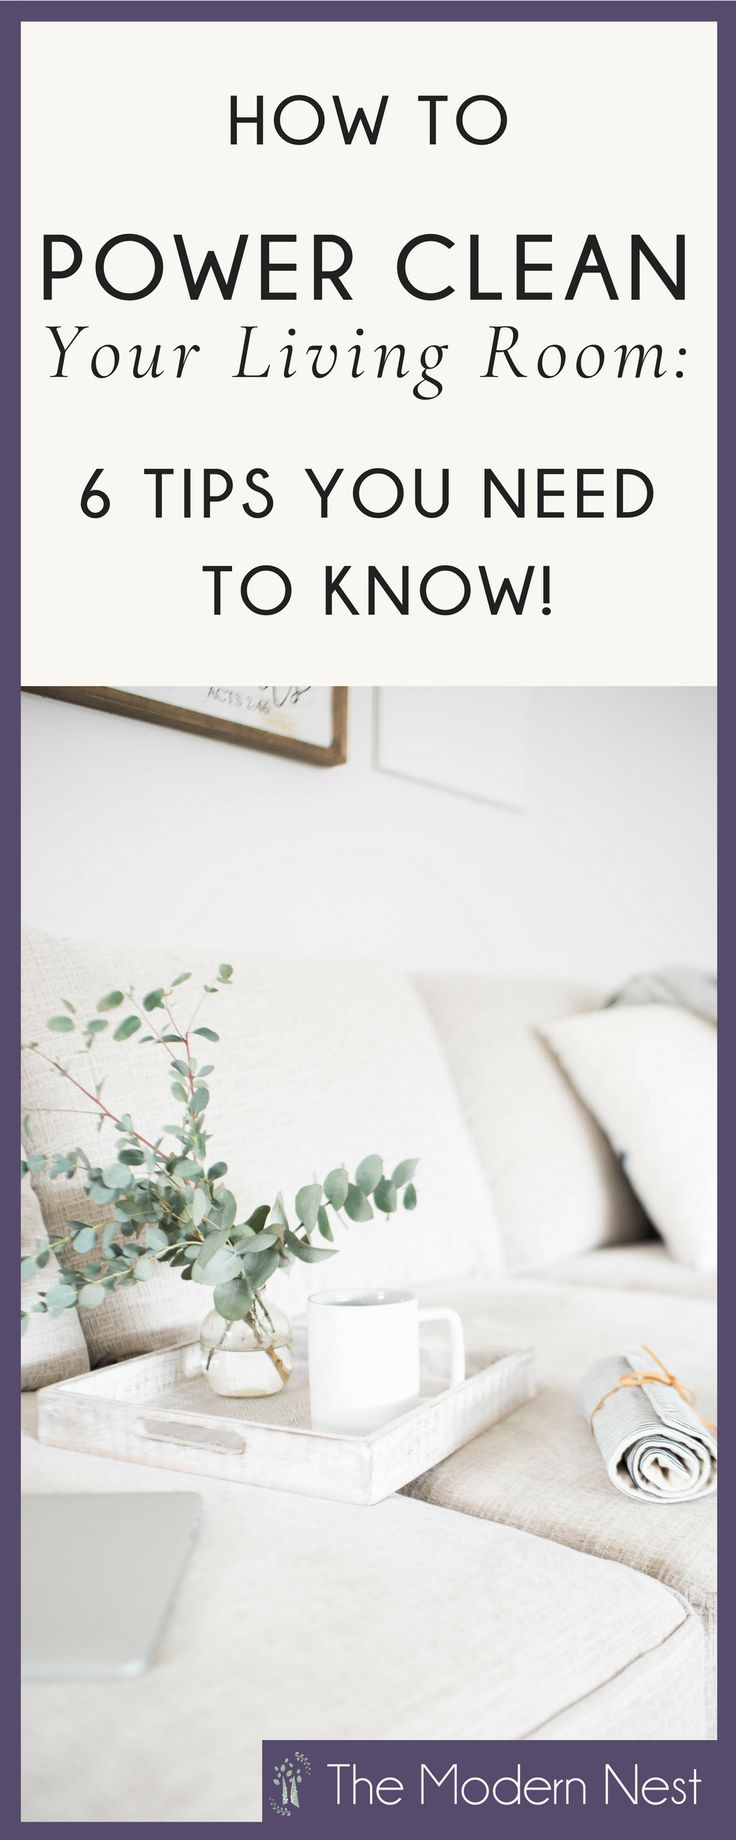 40047 Best Homemaking Tips And Resources Images On Pinterest Households Cleaning Hacks And